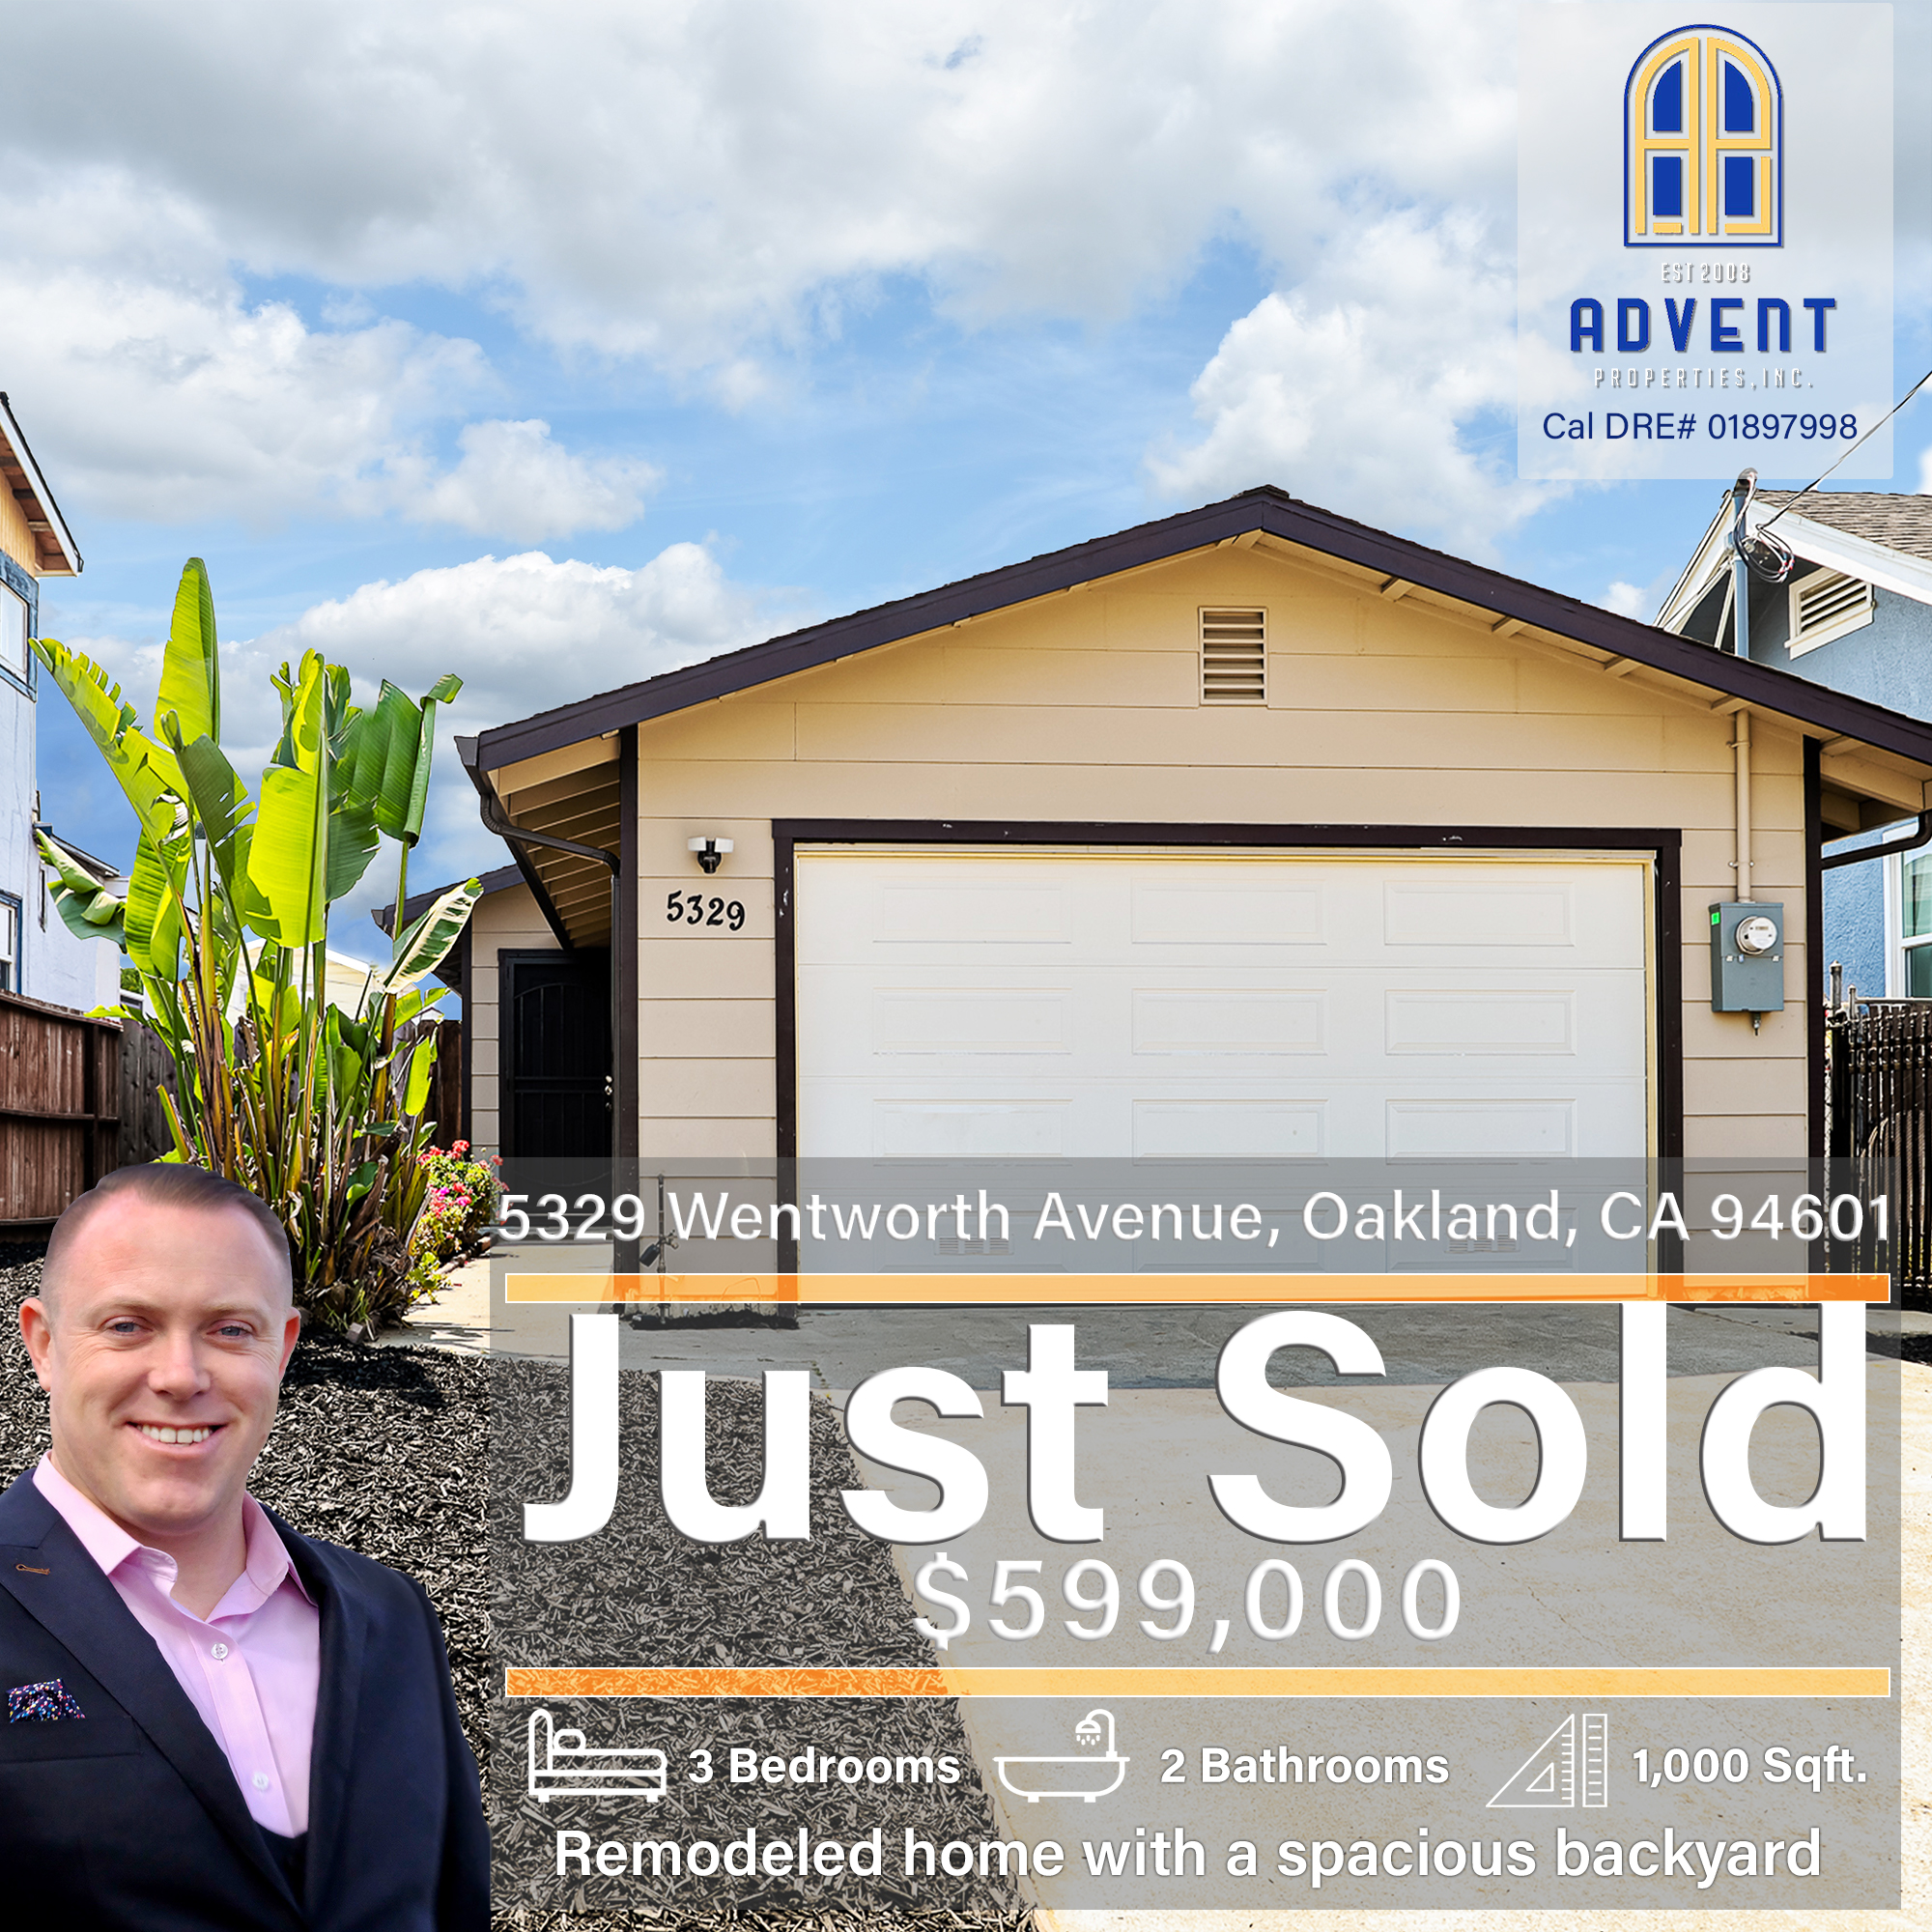 Just Sold by Darryl Glass: 5329 Wentworth Avenue, Oakland, CA 94601